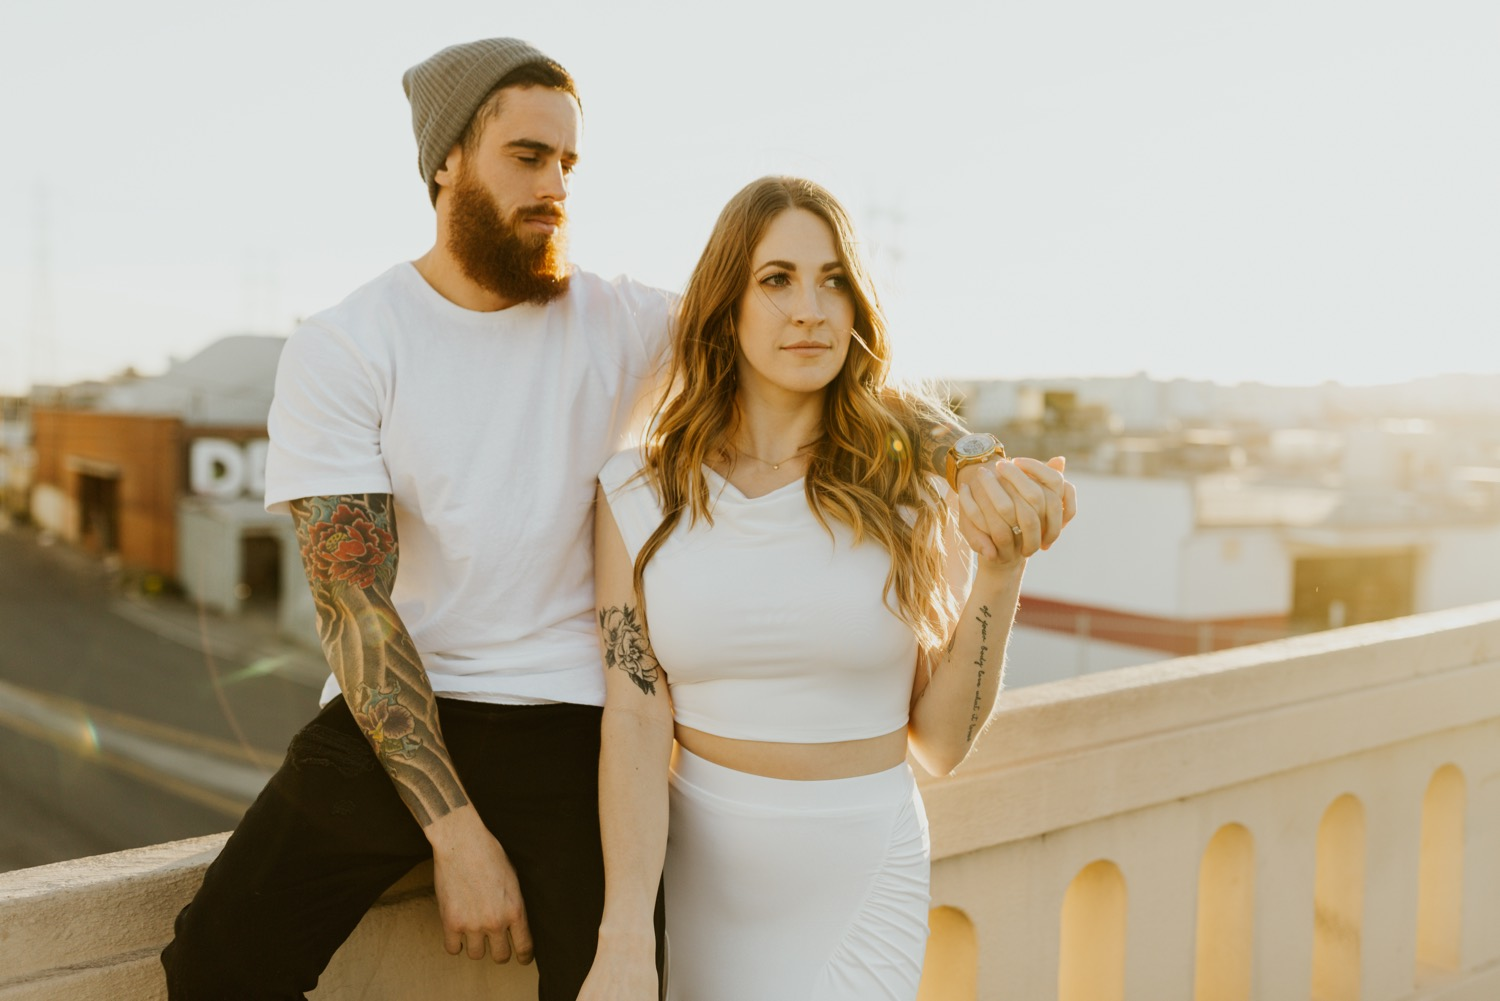 19_Downtown Arts District Los Angeles Engagement Session Megan & Ronnie | Emily Magers Photography-106.jpg